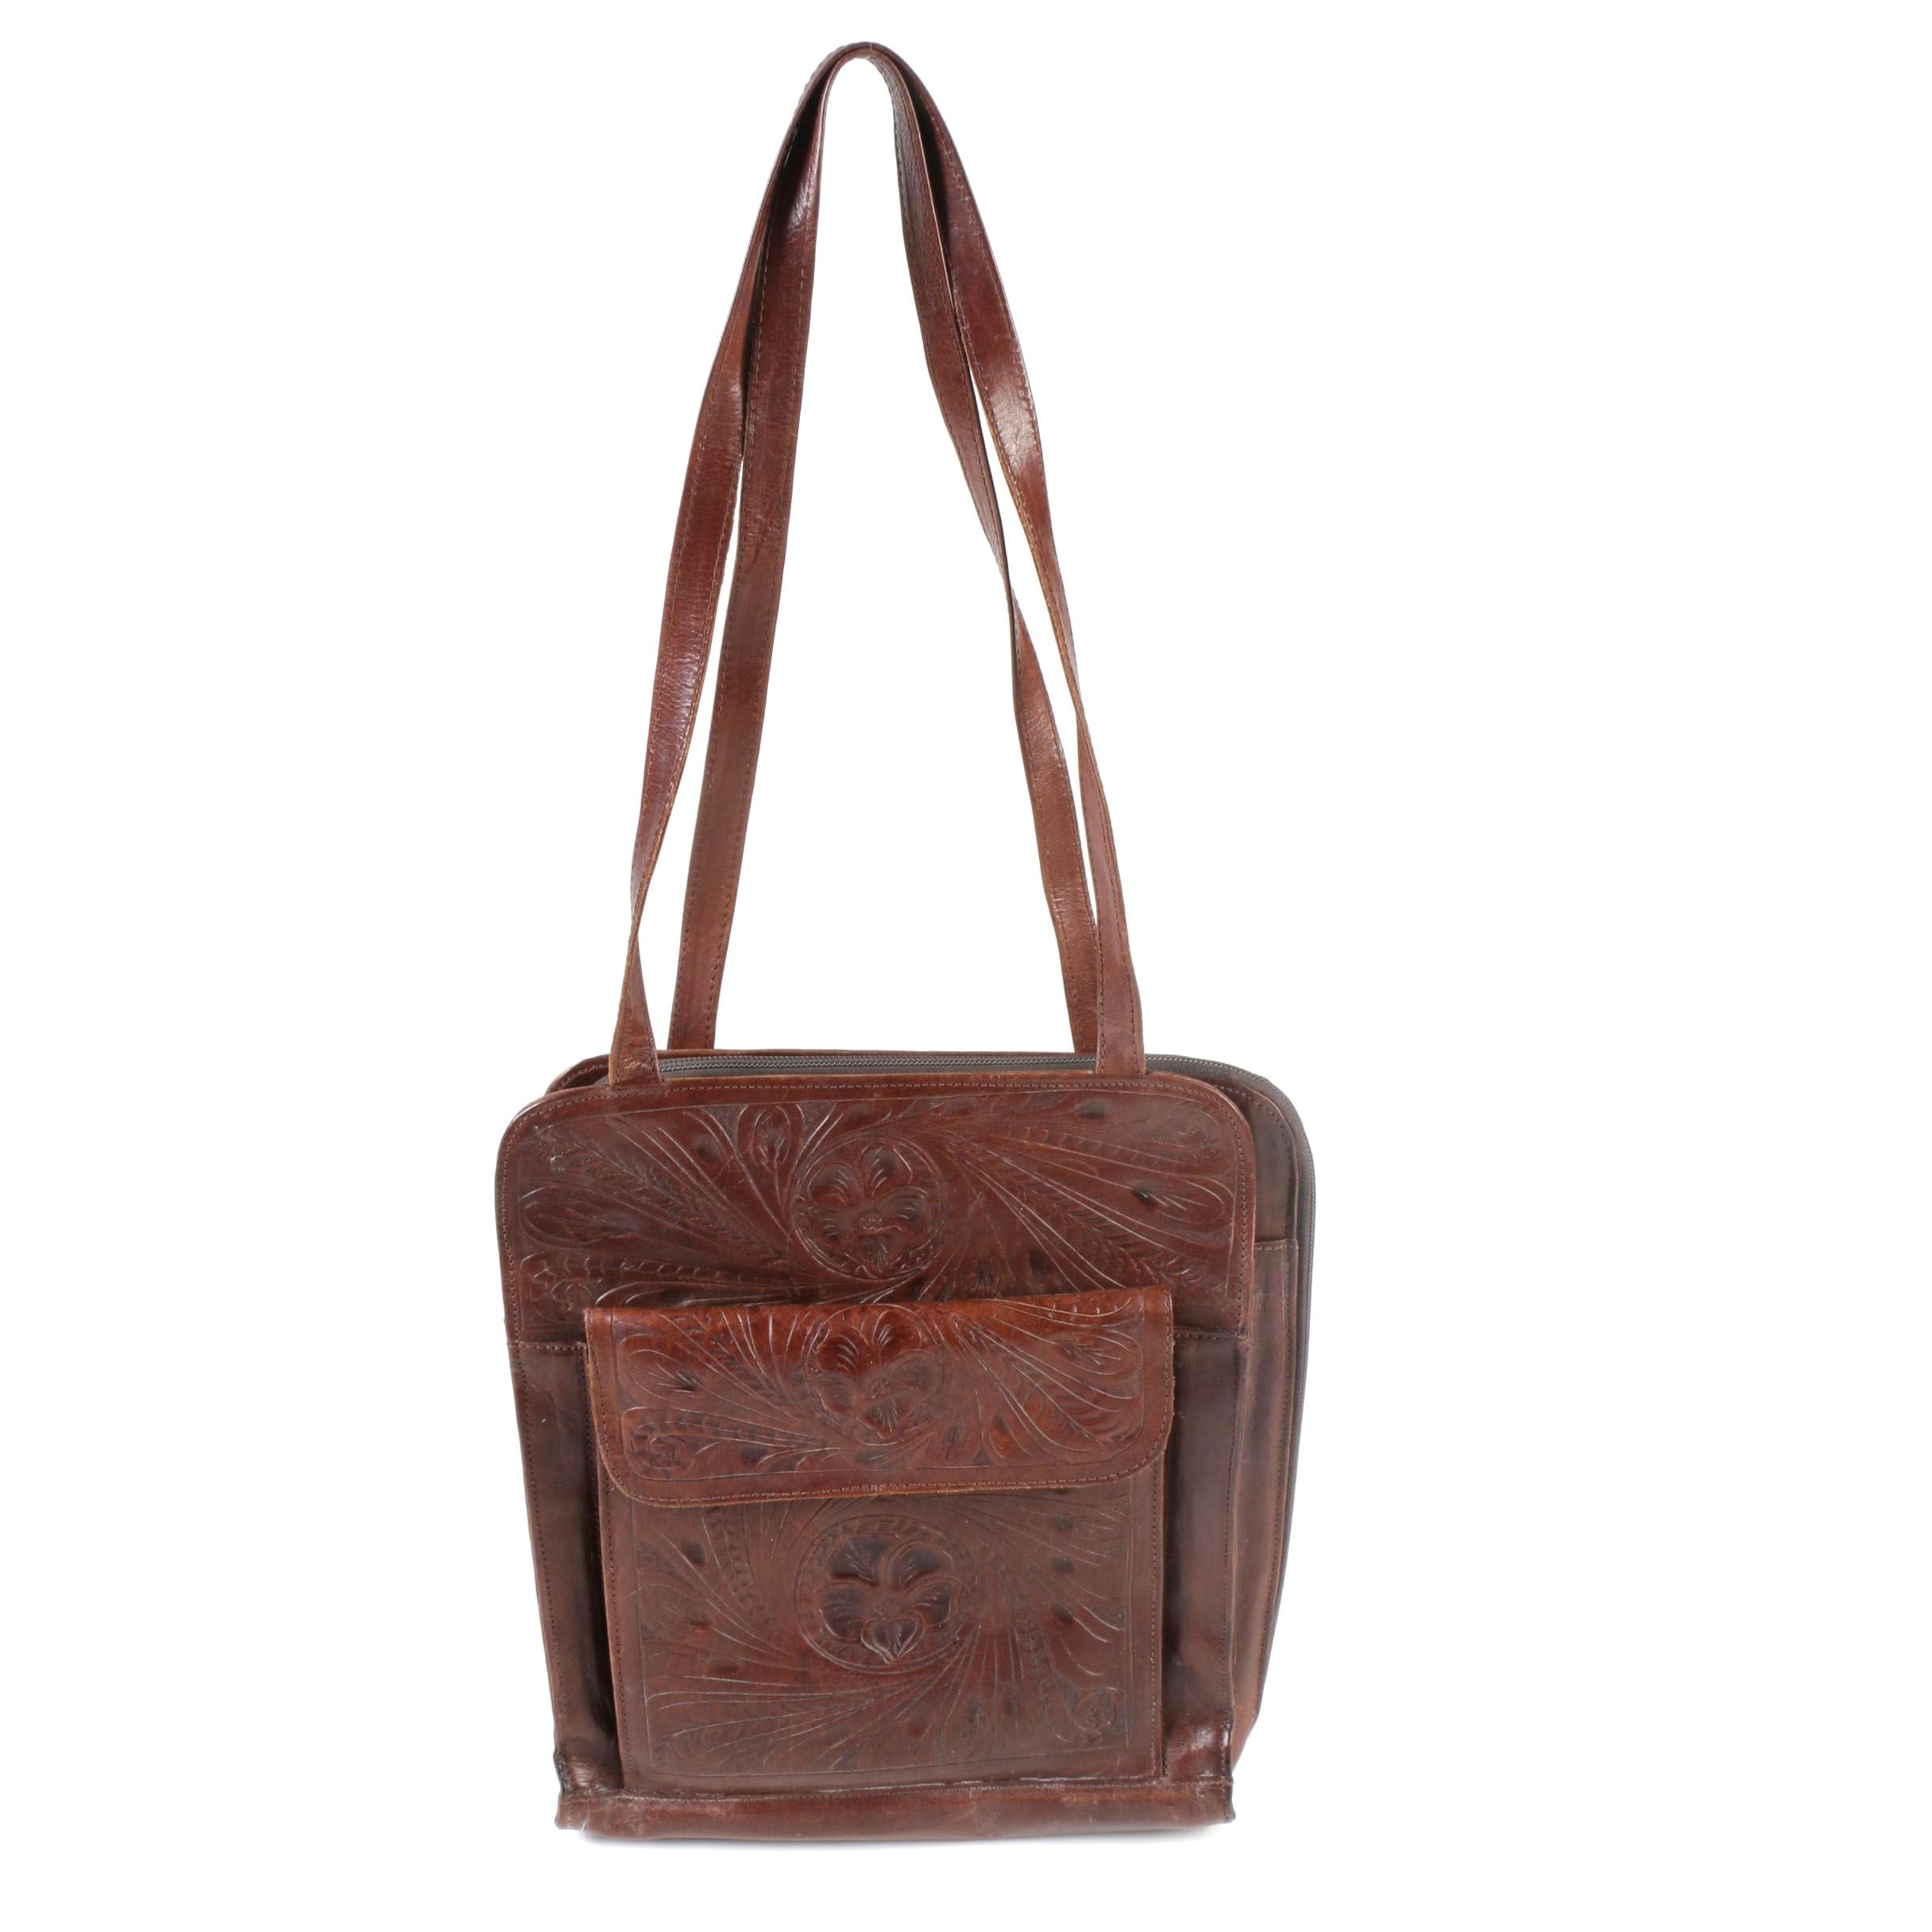 Leaders in Leather Tooled Leather Shoulder Bag, Made in Paraguay